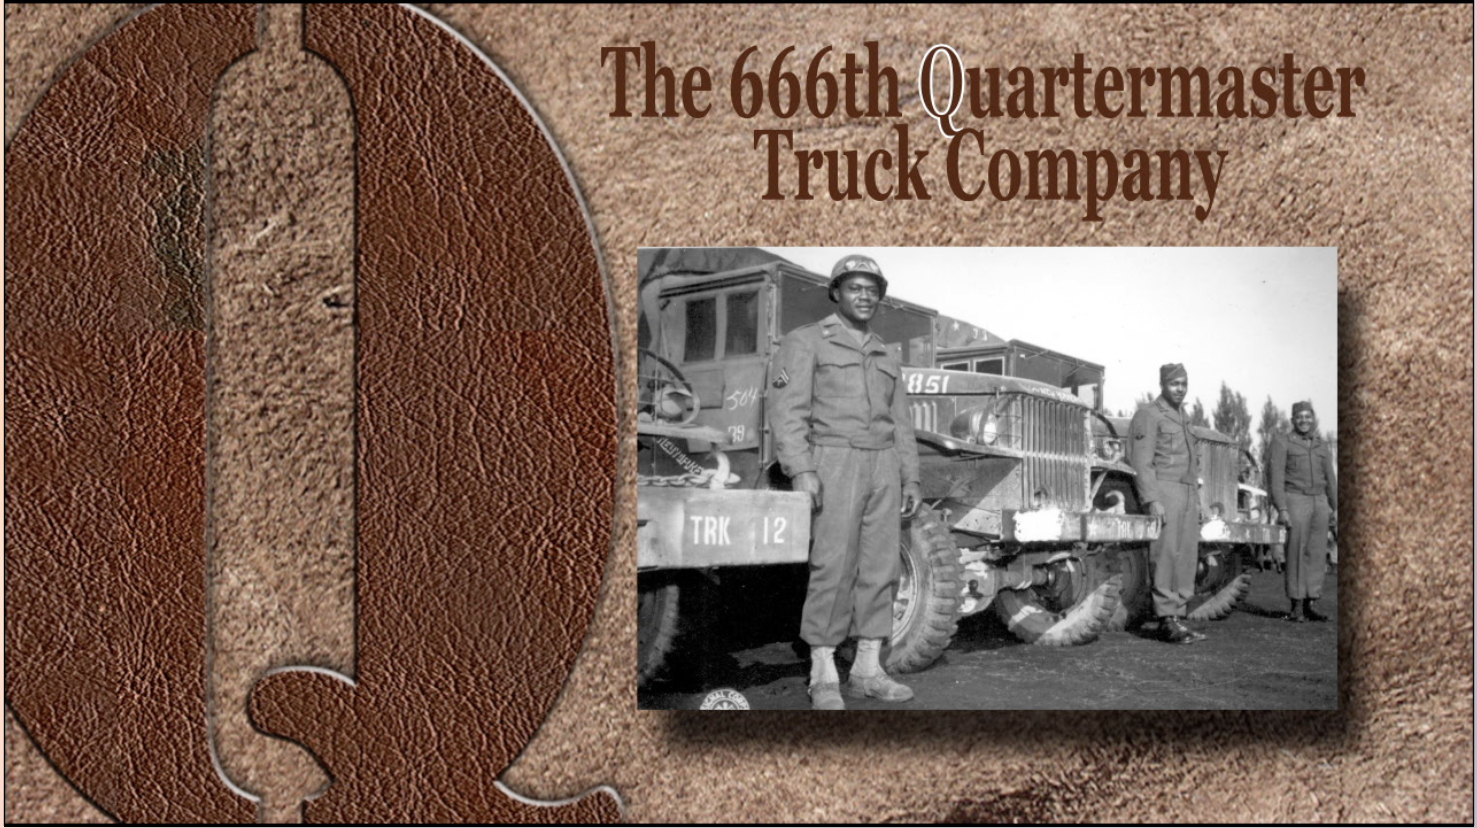 These drivers of the 666th Quartermaster Truck Company, 82nd Airborne Division, who chalked up 20,000 miles each without an accident, since arriving in the European Theater of Operations.""